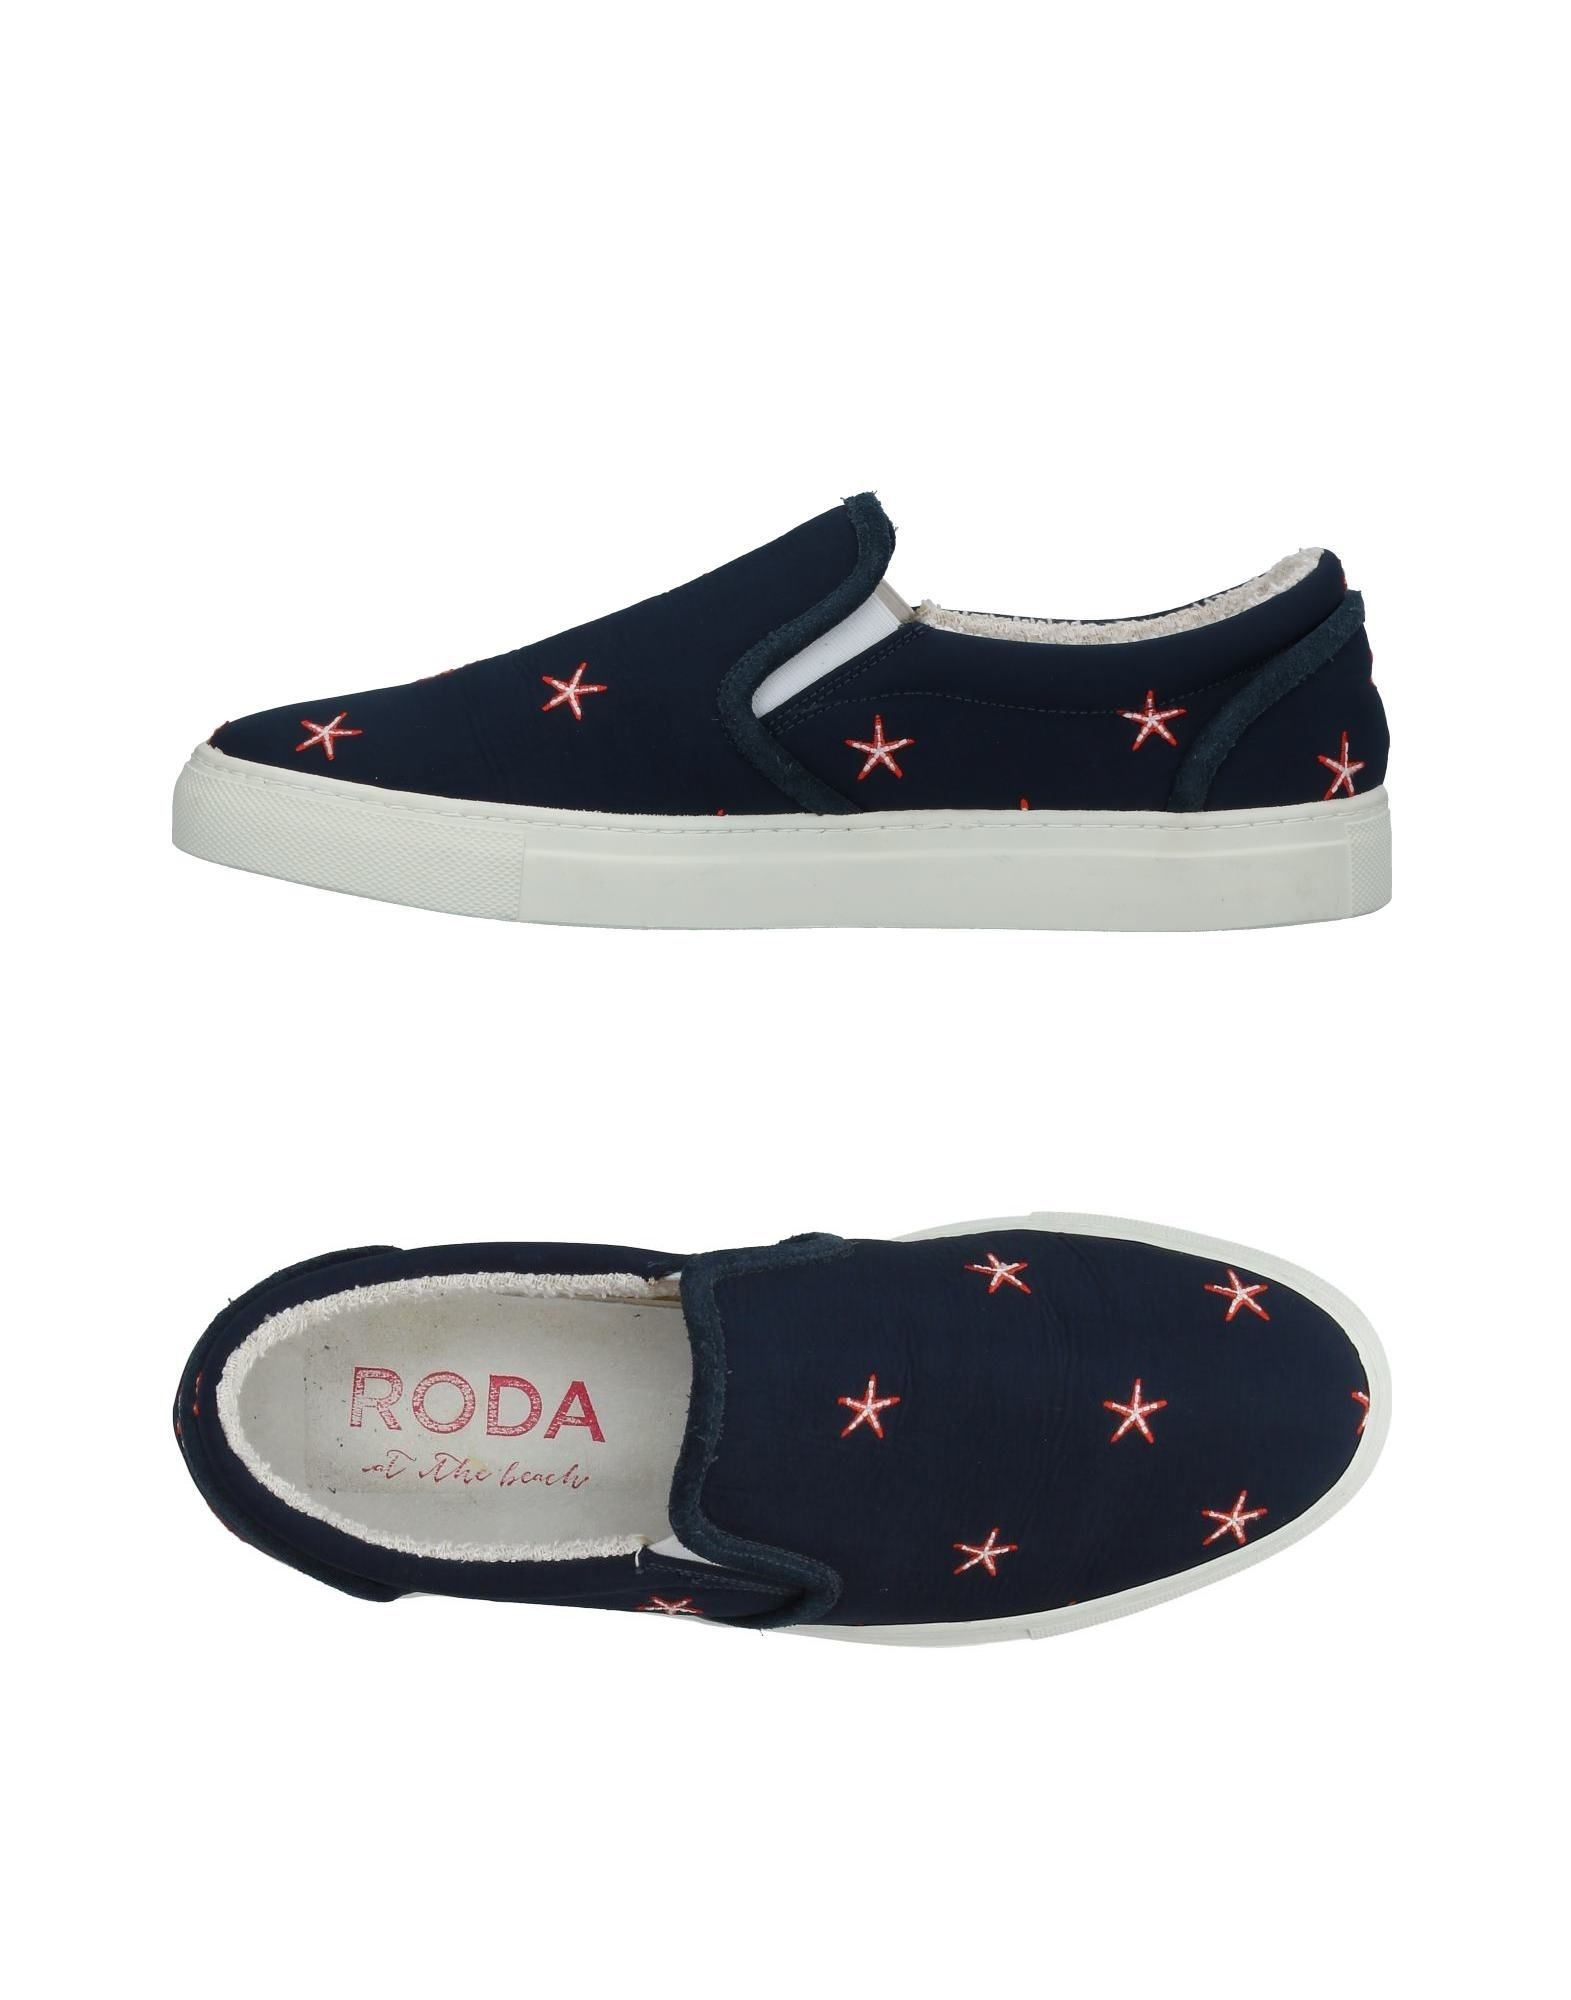 Sneakers Roda At The Beach Donna - Acquista online su